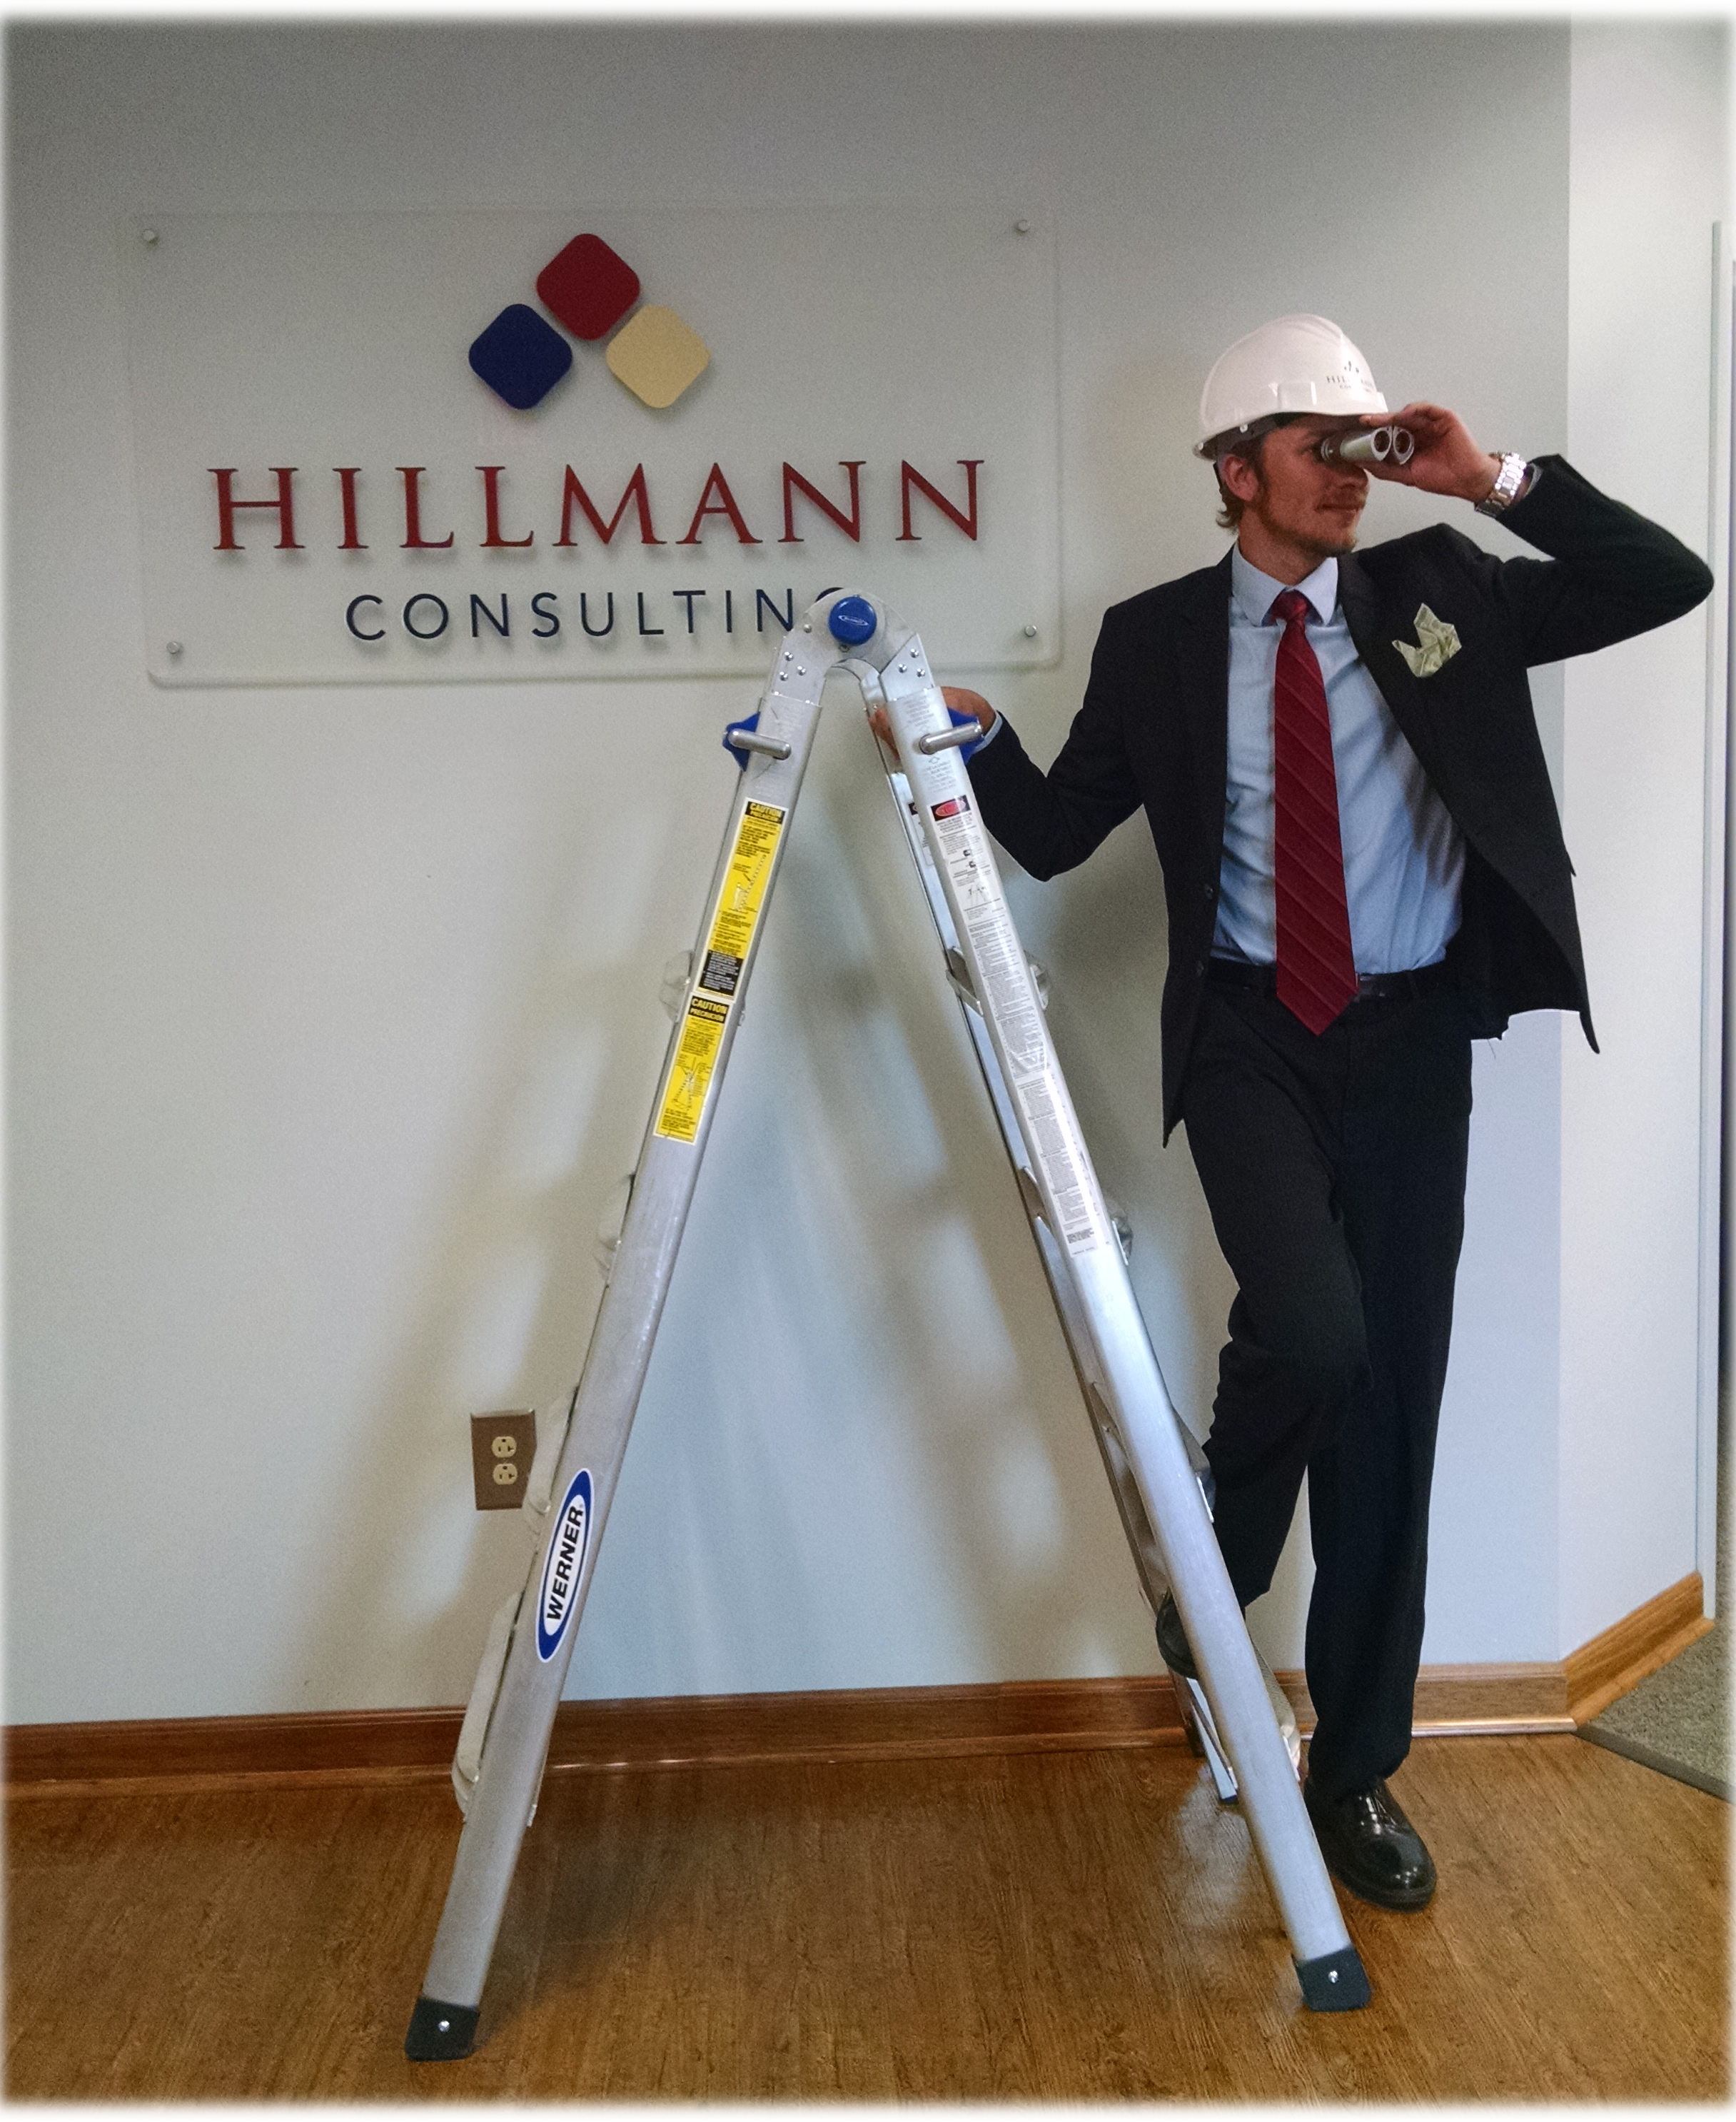 Hillmann Consulting FTLD Pose